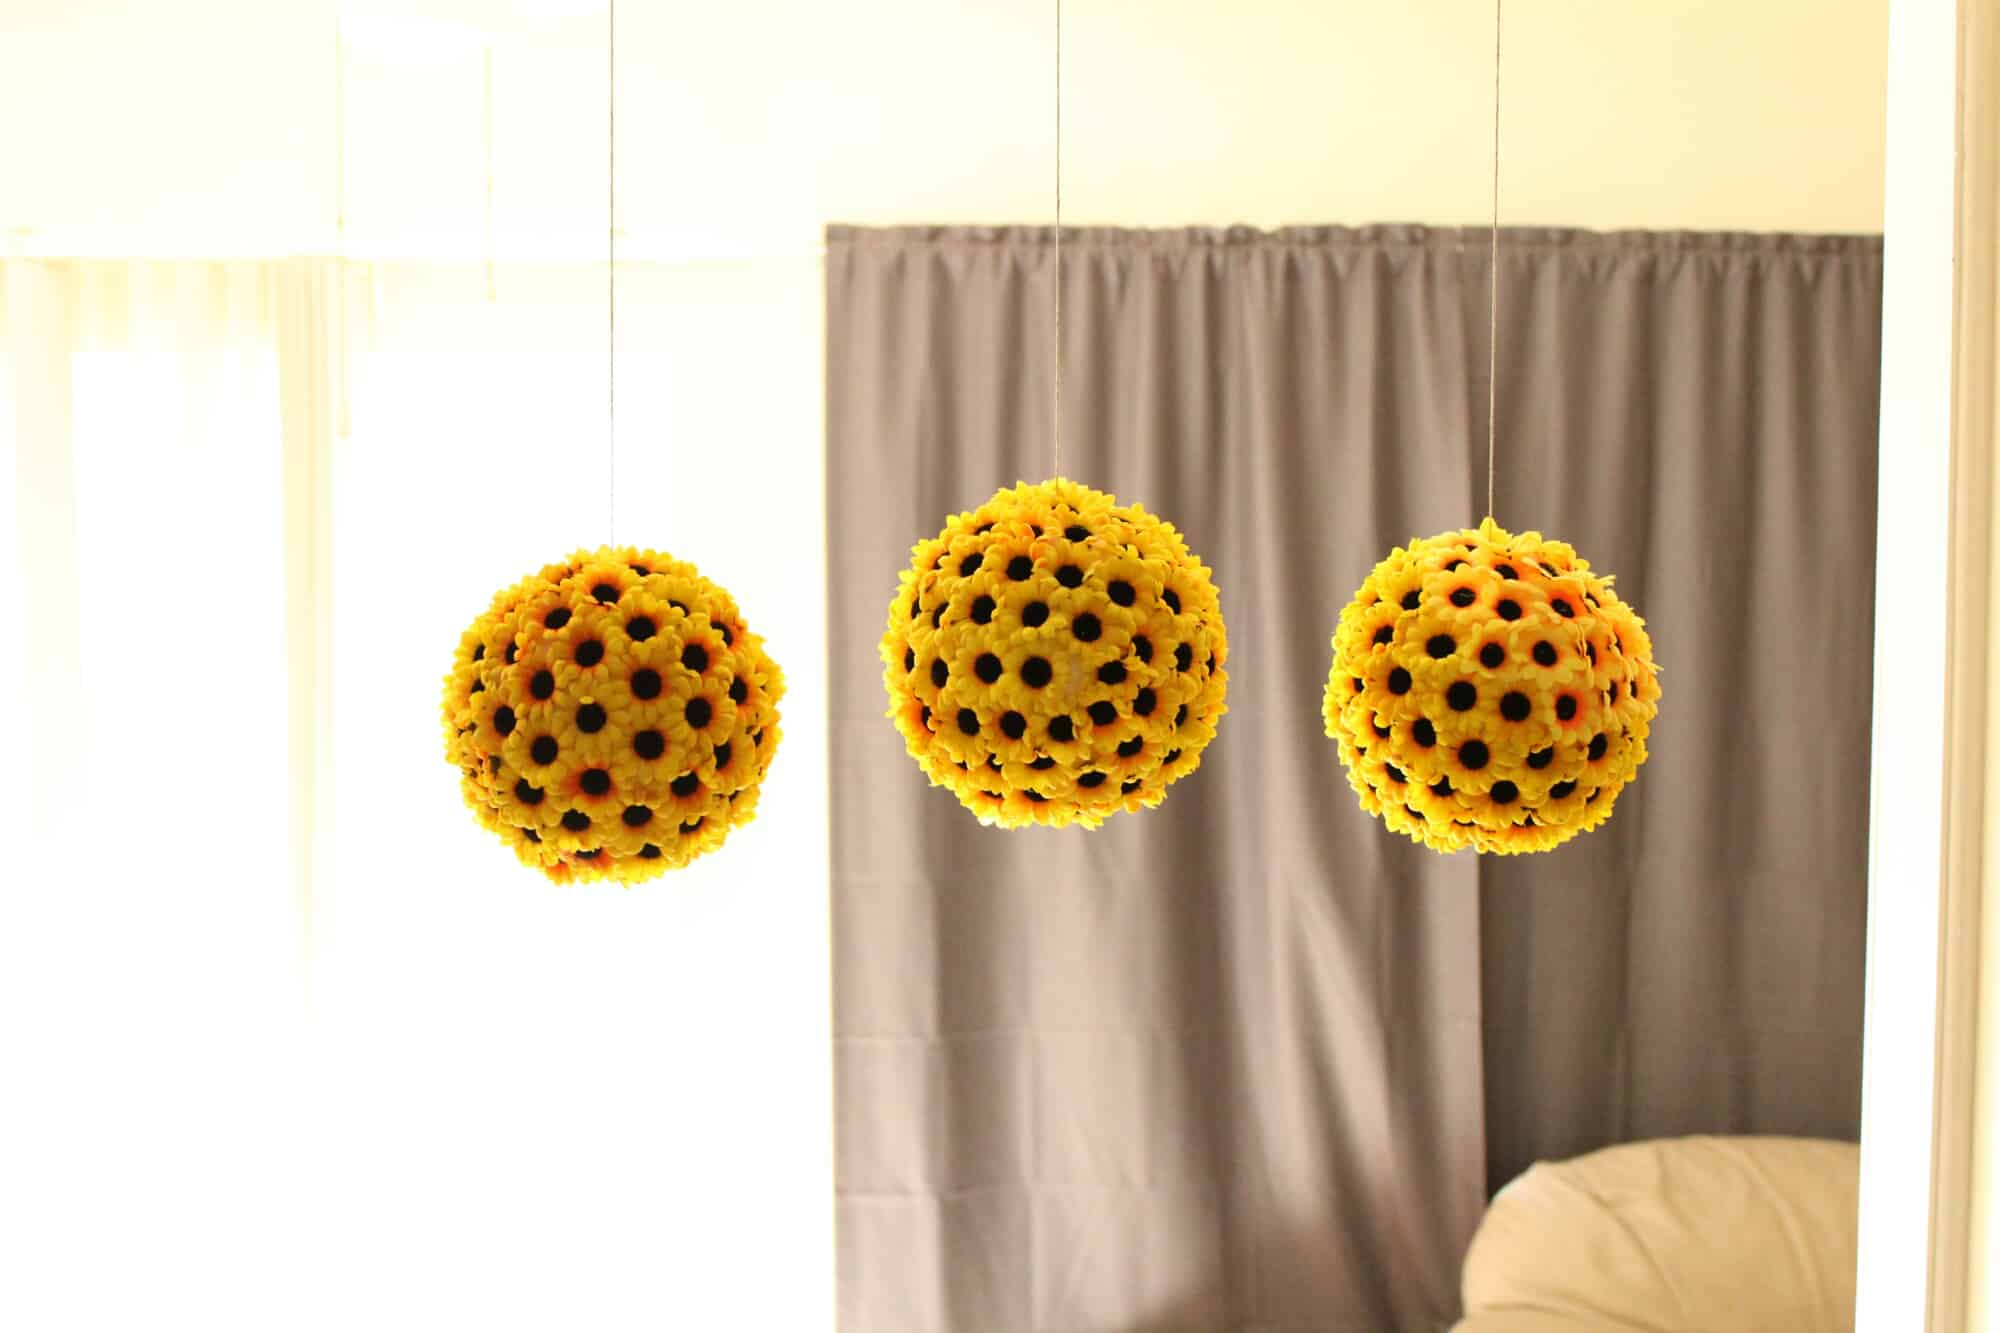 Sunflower balls